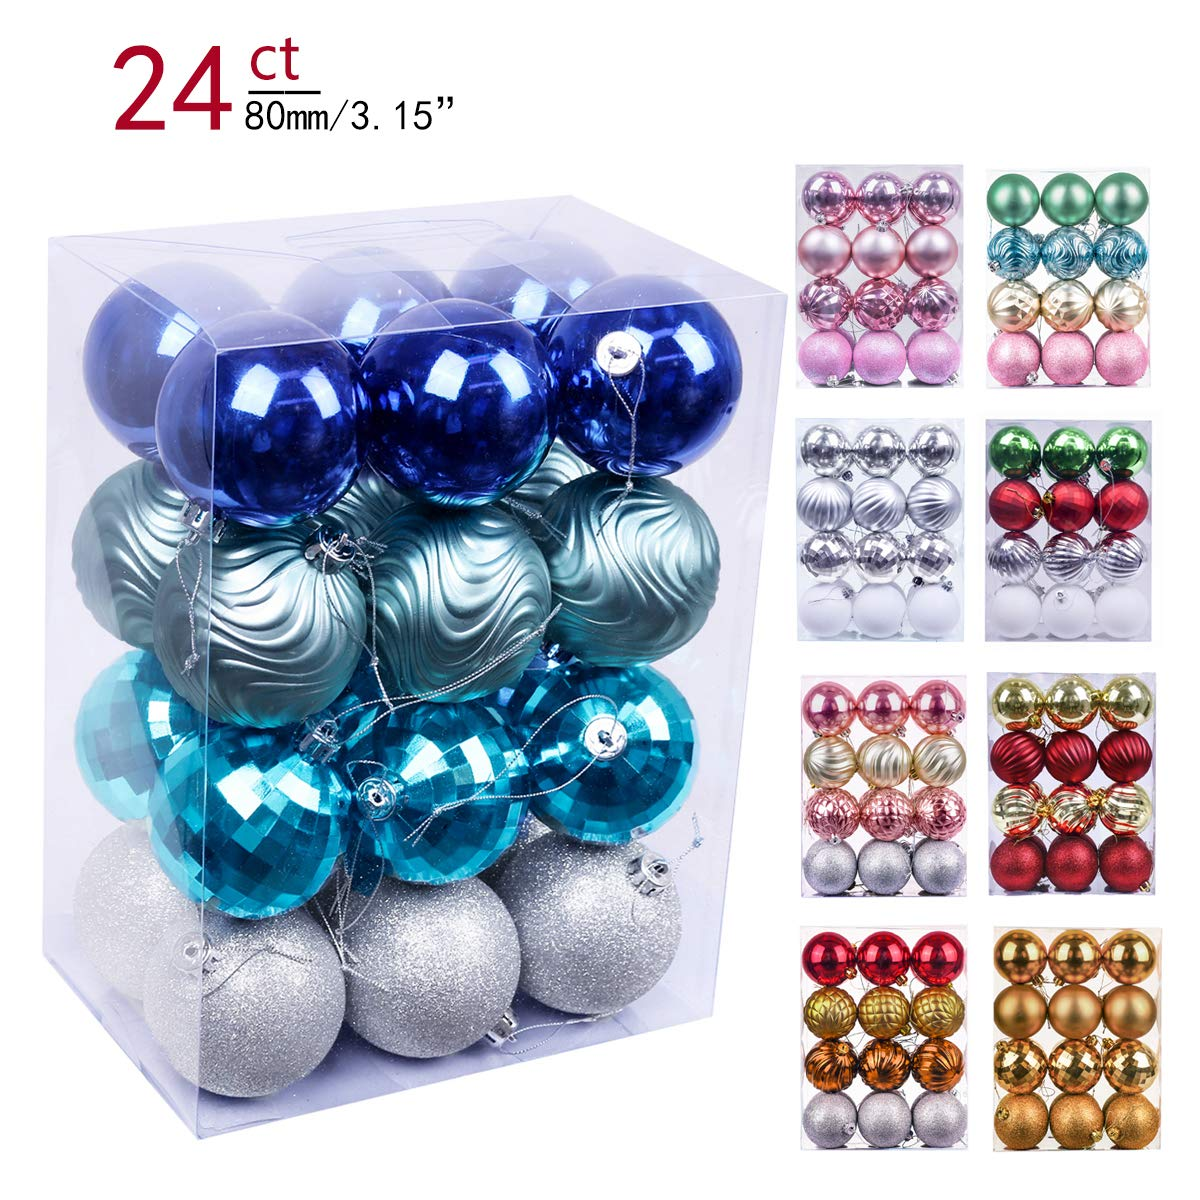 Valery Madelyn 24ct 80mm Winter Wishes Blue Silver Shatterproof Christmas Ball Ornaments Decoration,Themed with Tree Skirt(Not Included) EG0101-0067